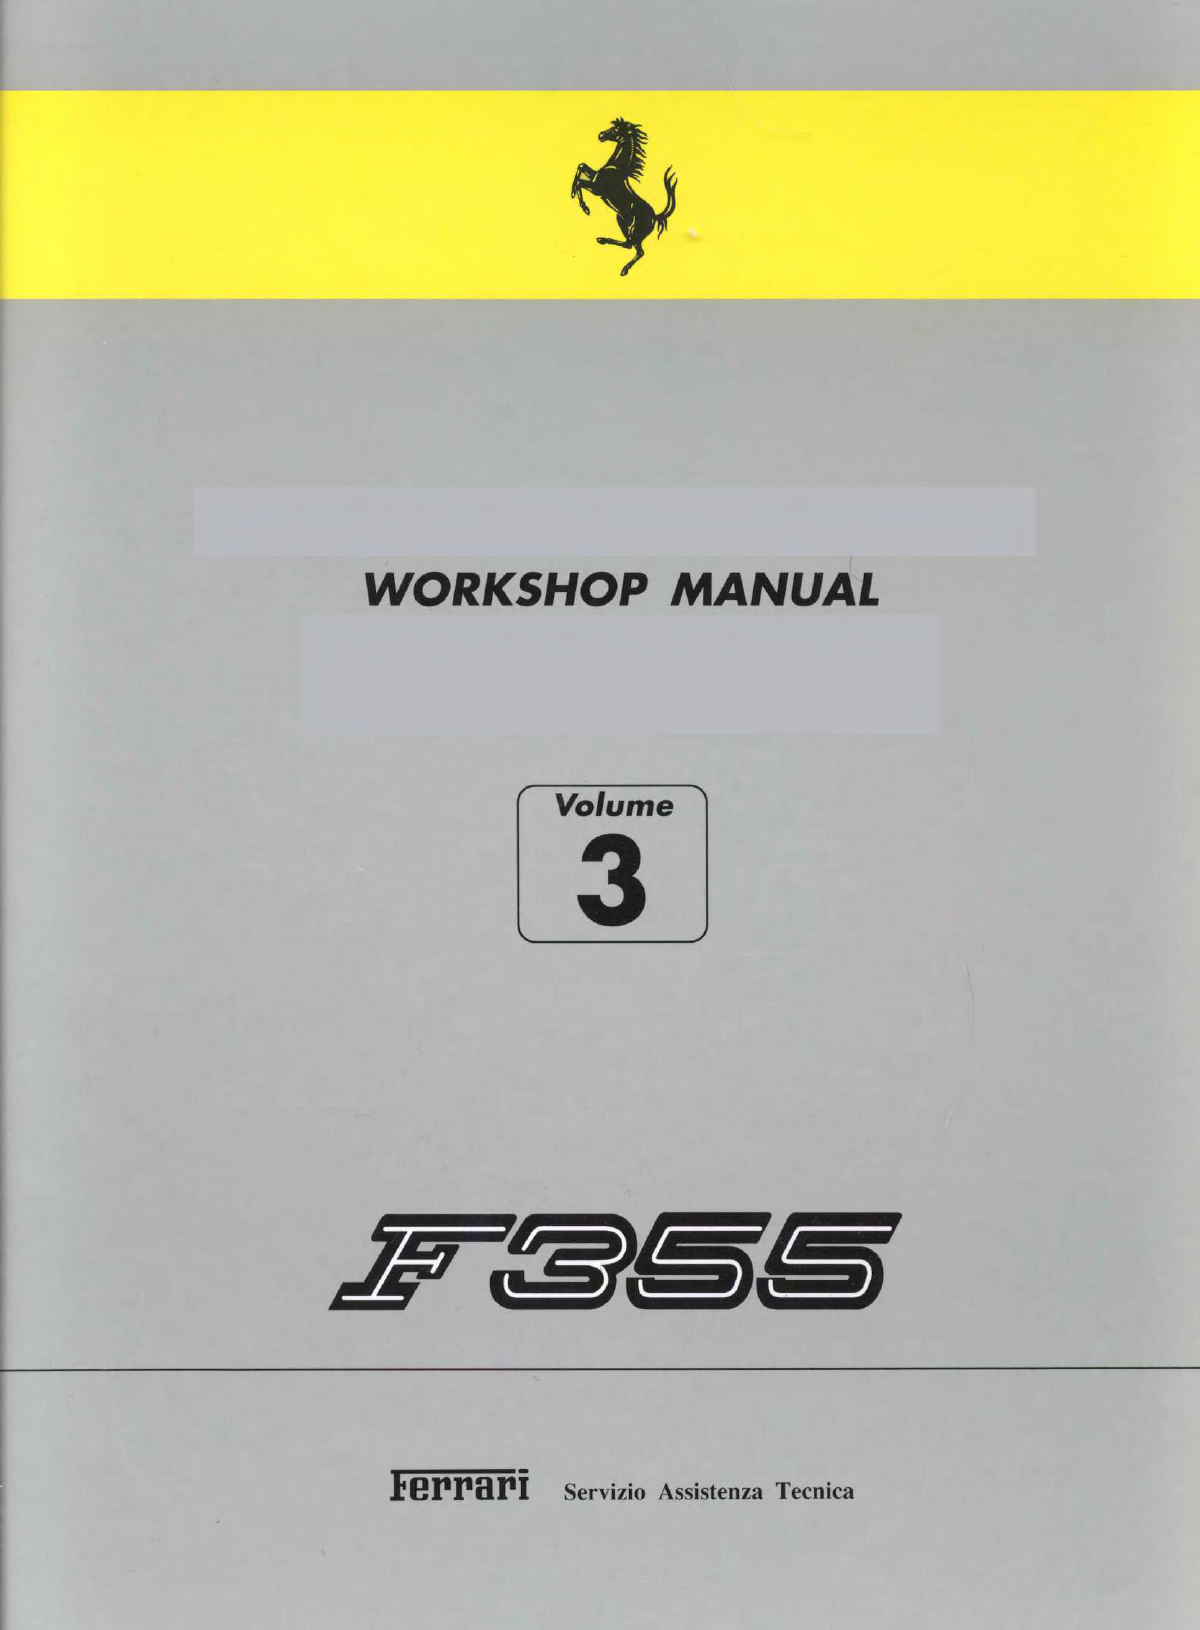 See our other Ferrari 355 Manuals: